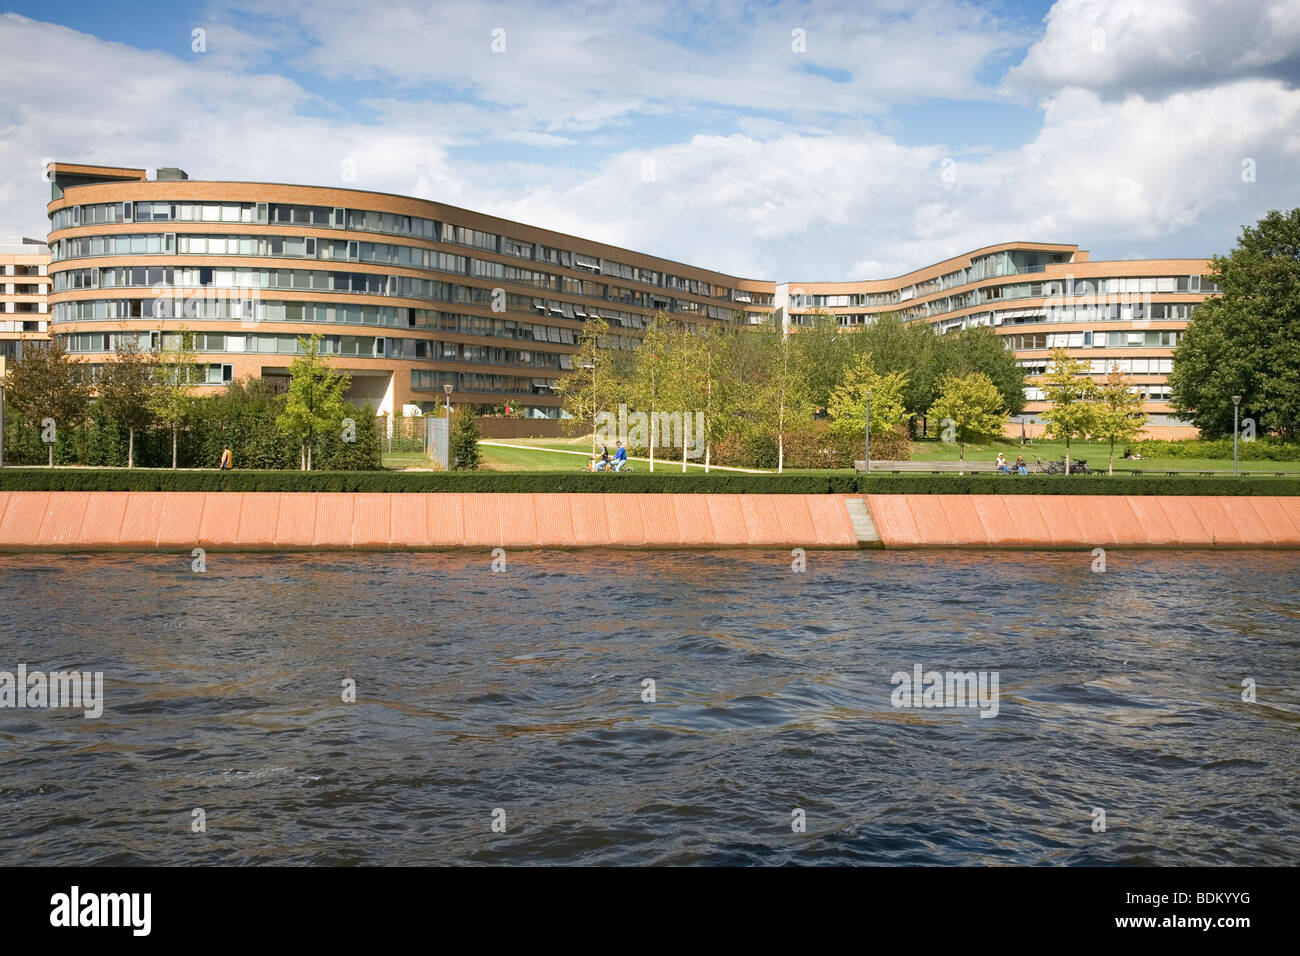 Moabiter Werder - Residential area for Government Employees, architect Georg Bumiller, Berlin, Germany - Stock Image